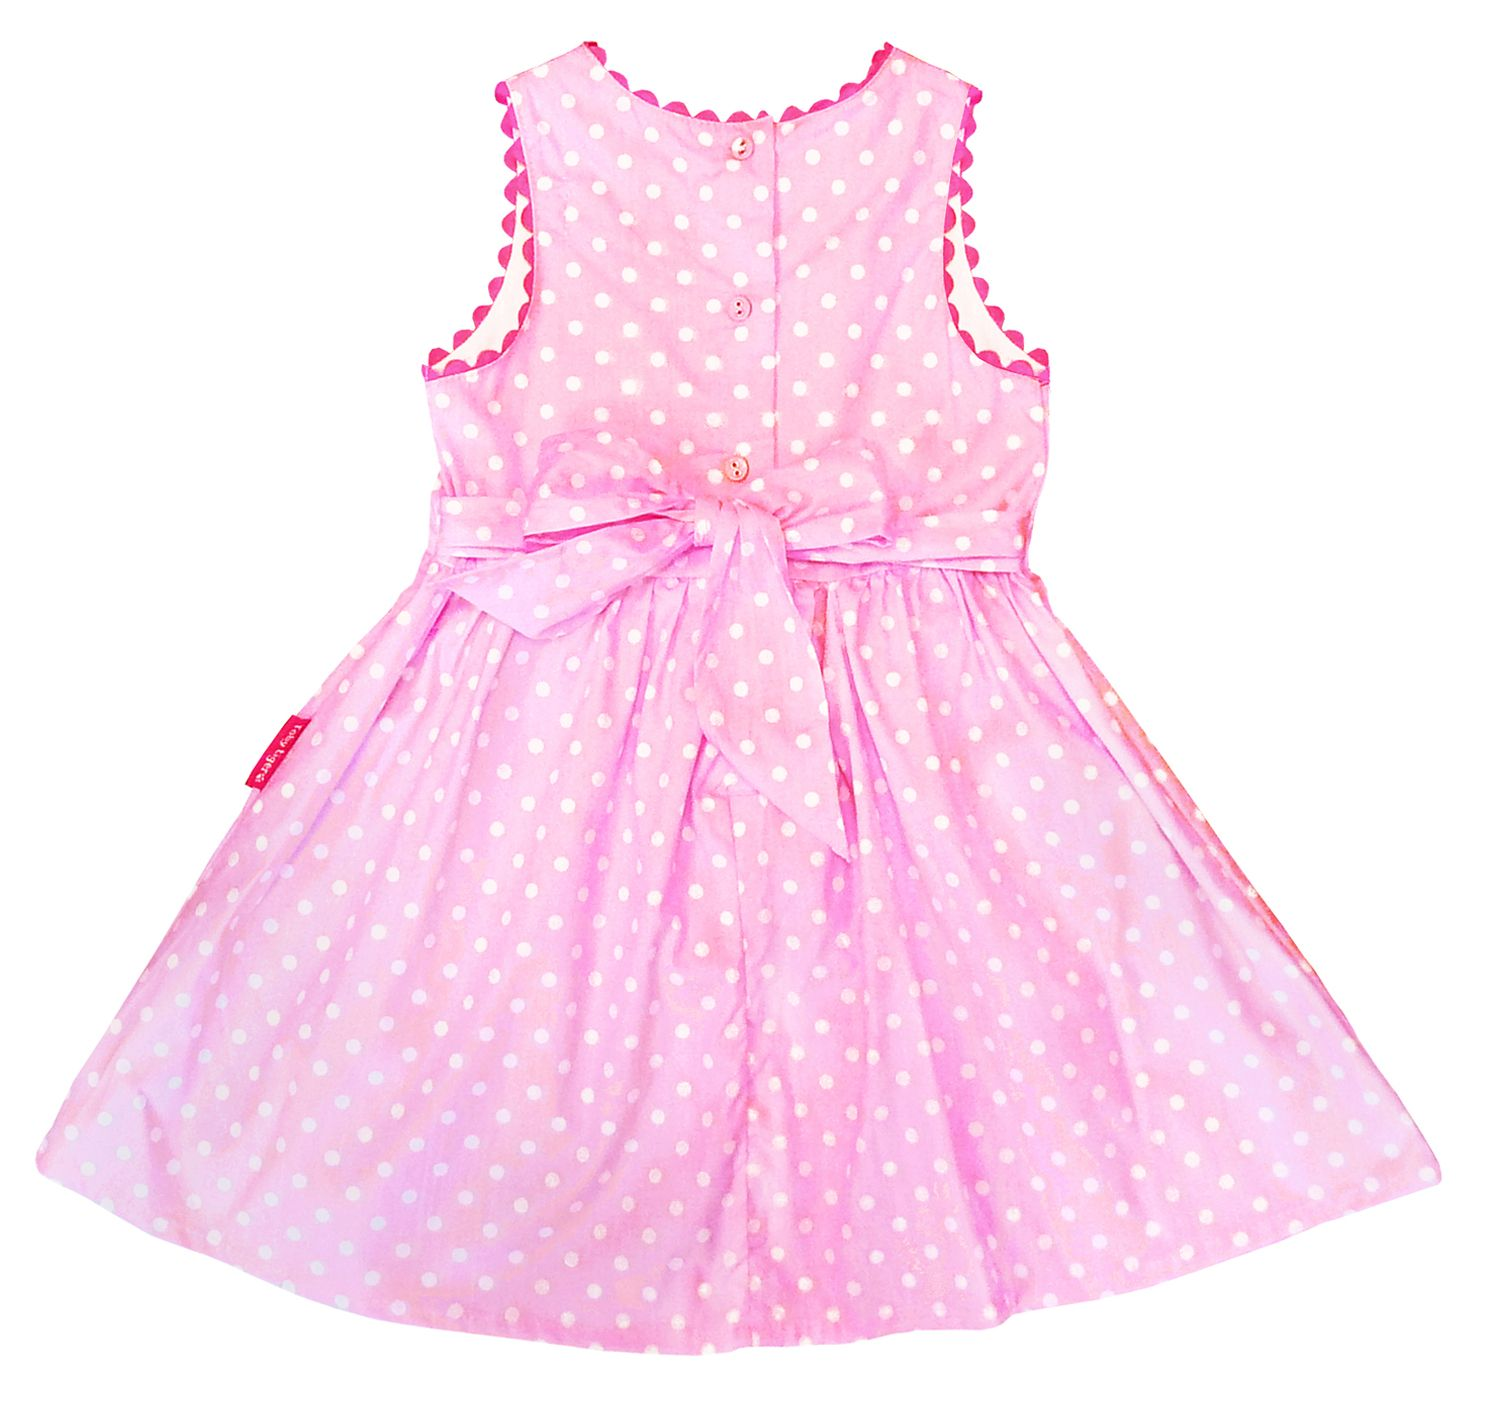 Girl`s party dress in pink with white dots